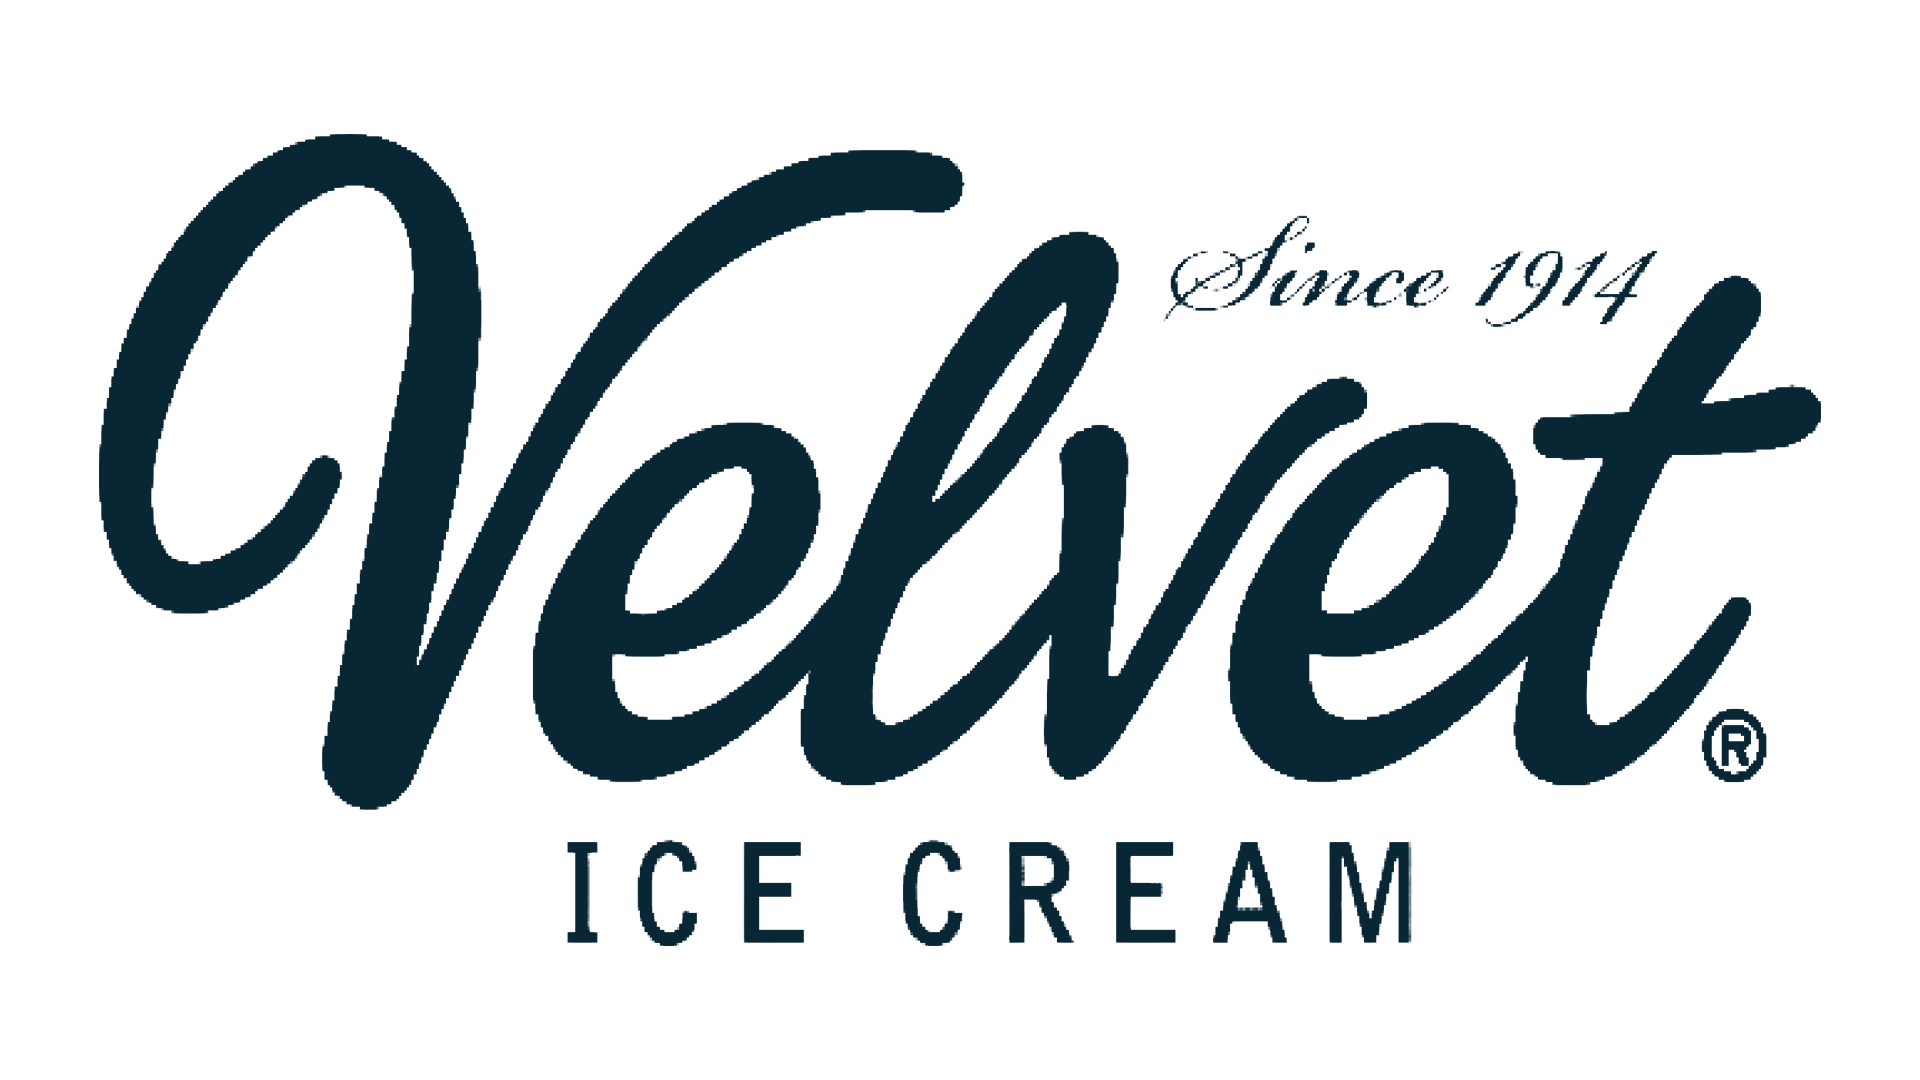 Velvet Ice Cream Logo